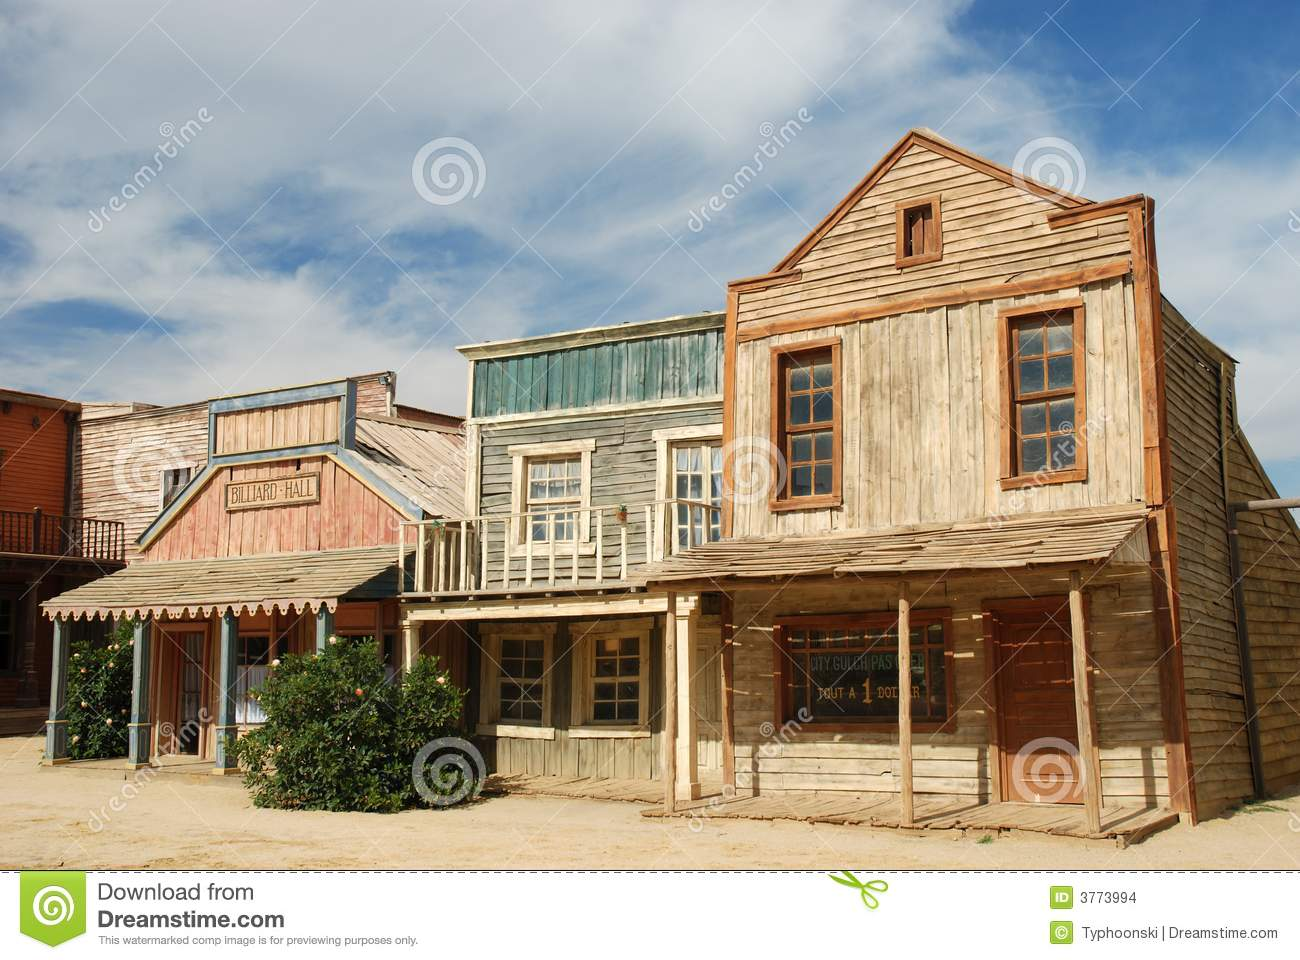 Wooden Buildings In An American Town Stock Photo Image